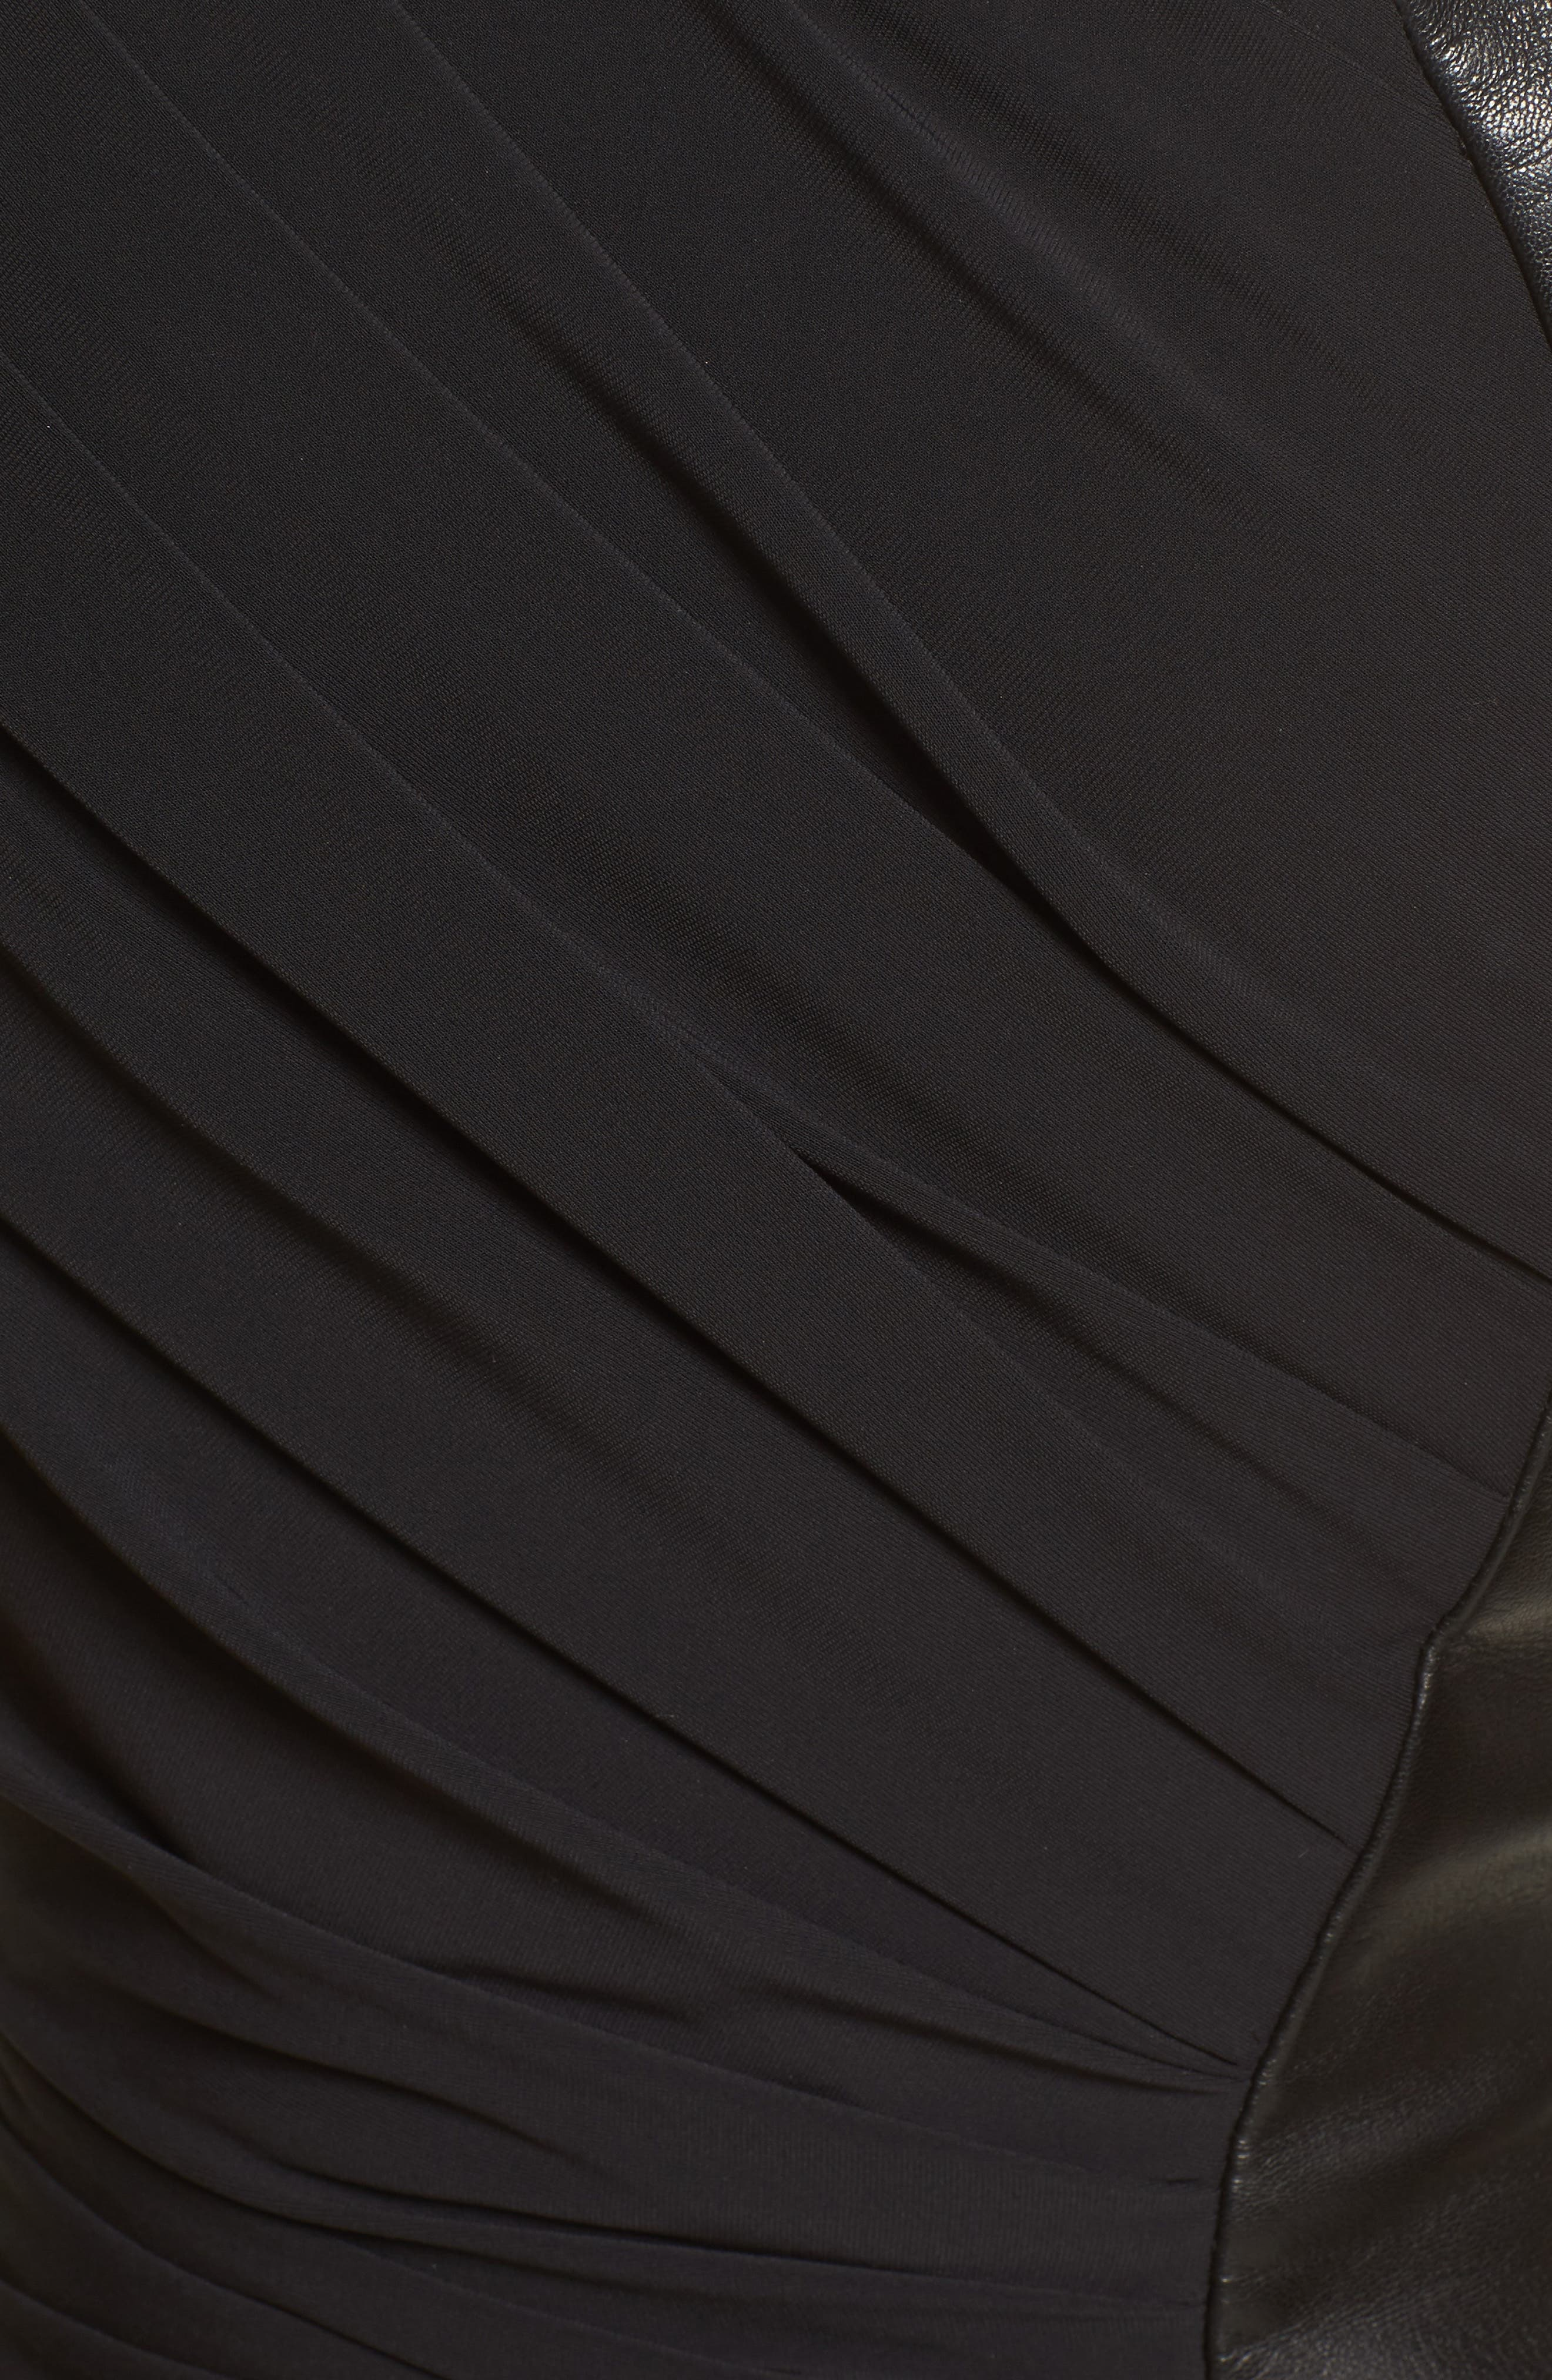 Draped Jersey & Leather Gown,                             Alternate thumbnail 5, color,